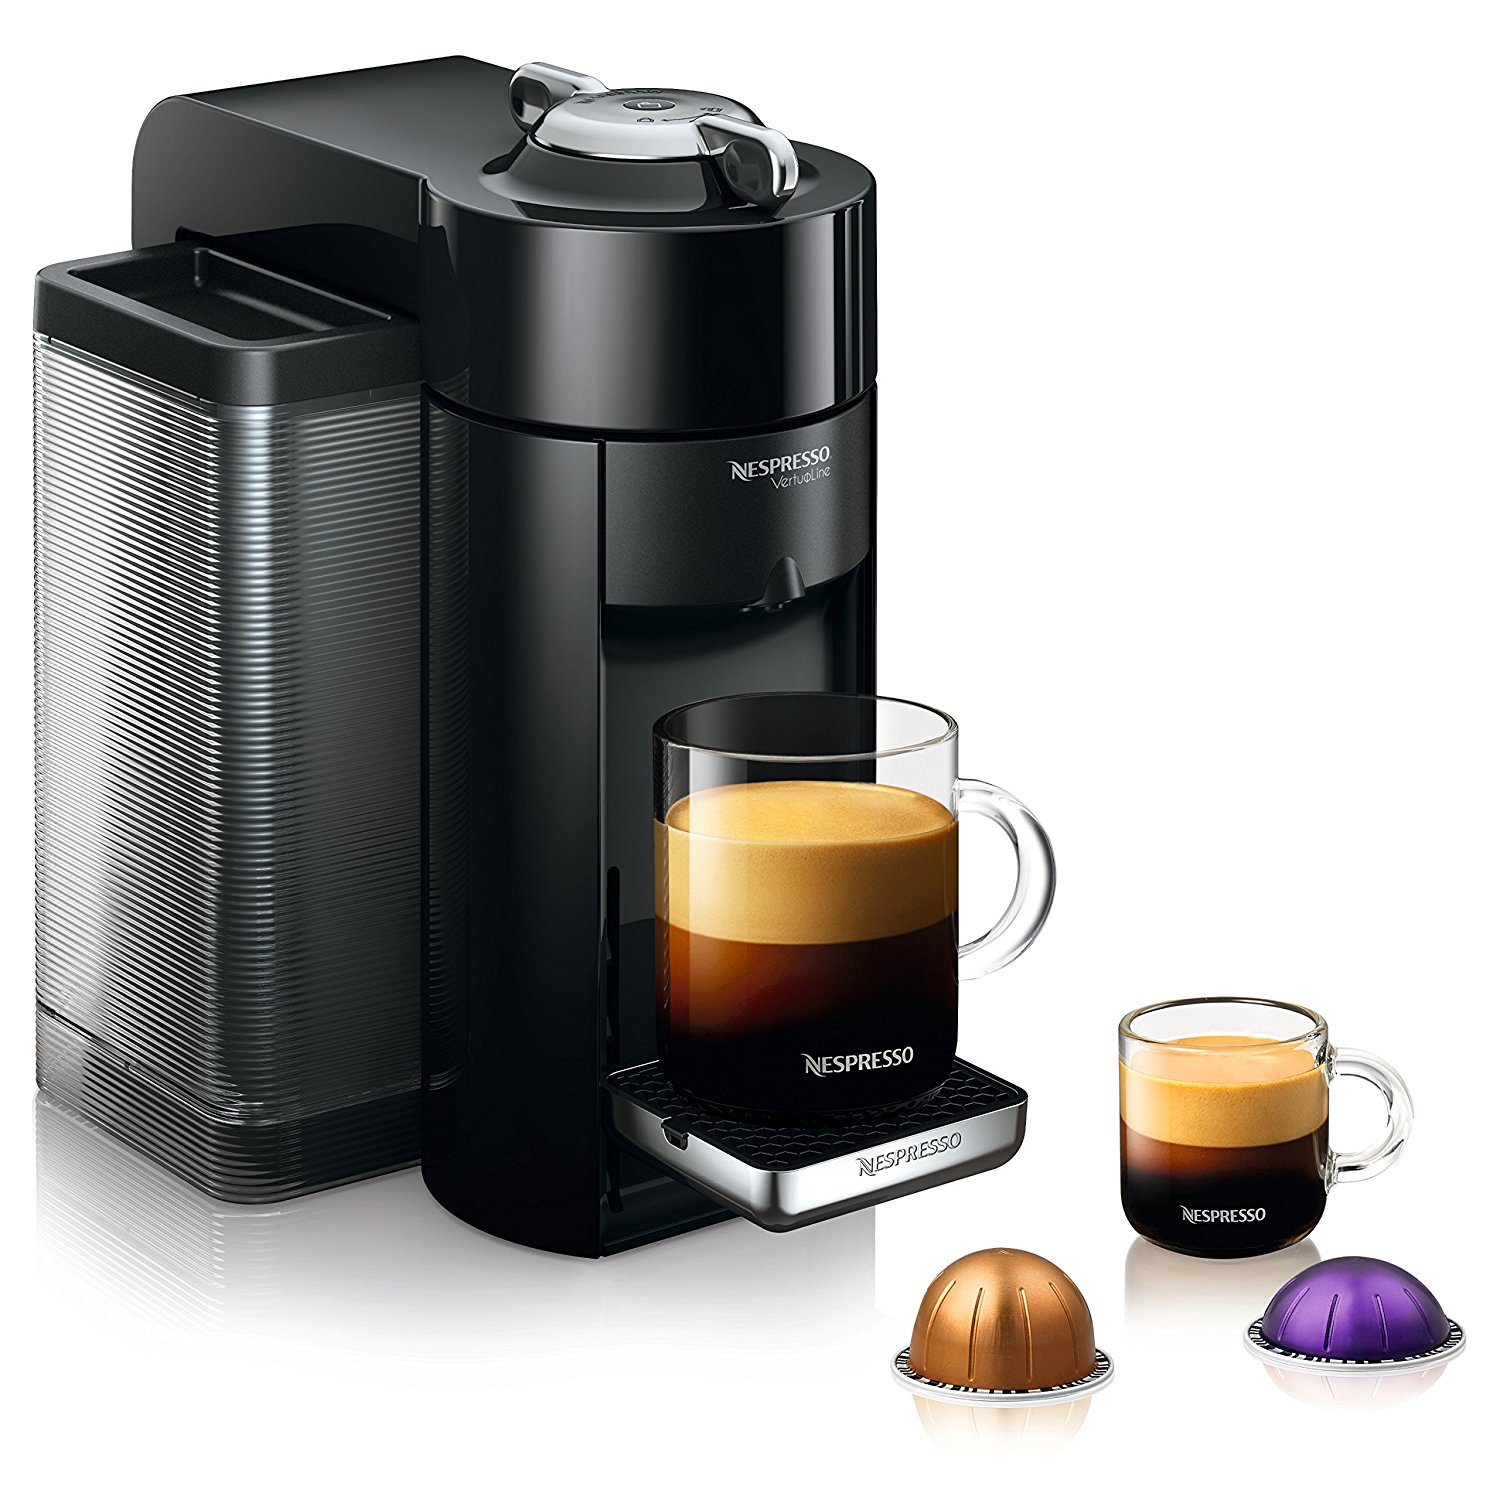 Review of Nespresso Evoluo Espresso Maker